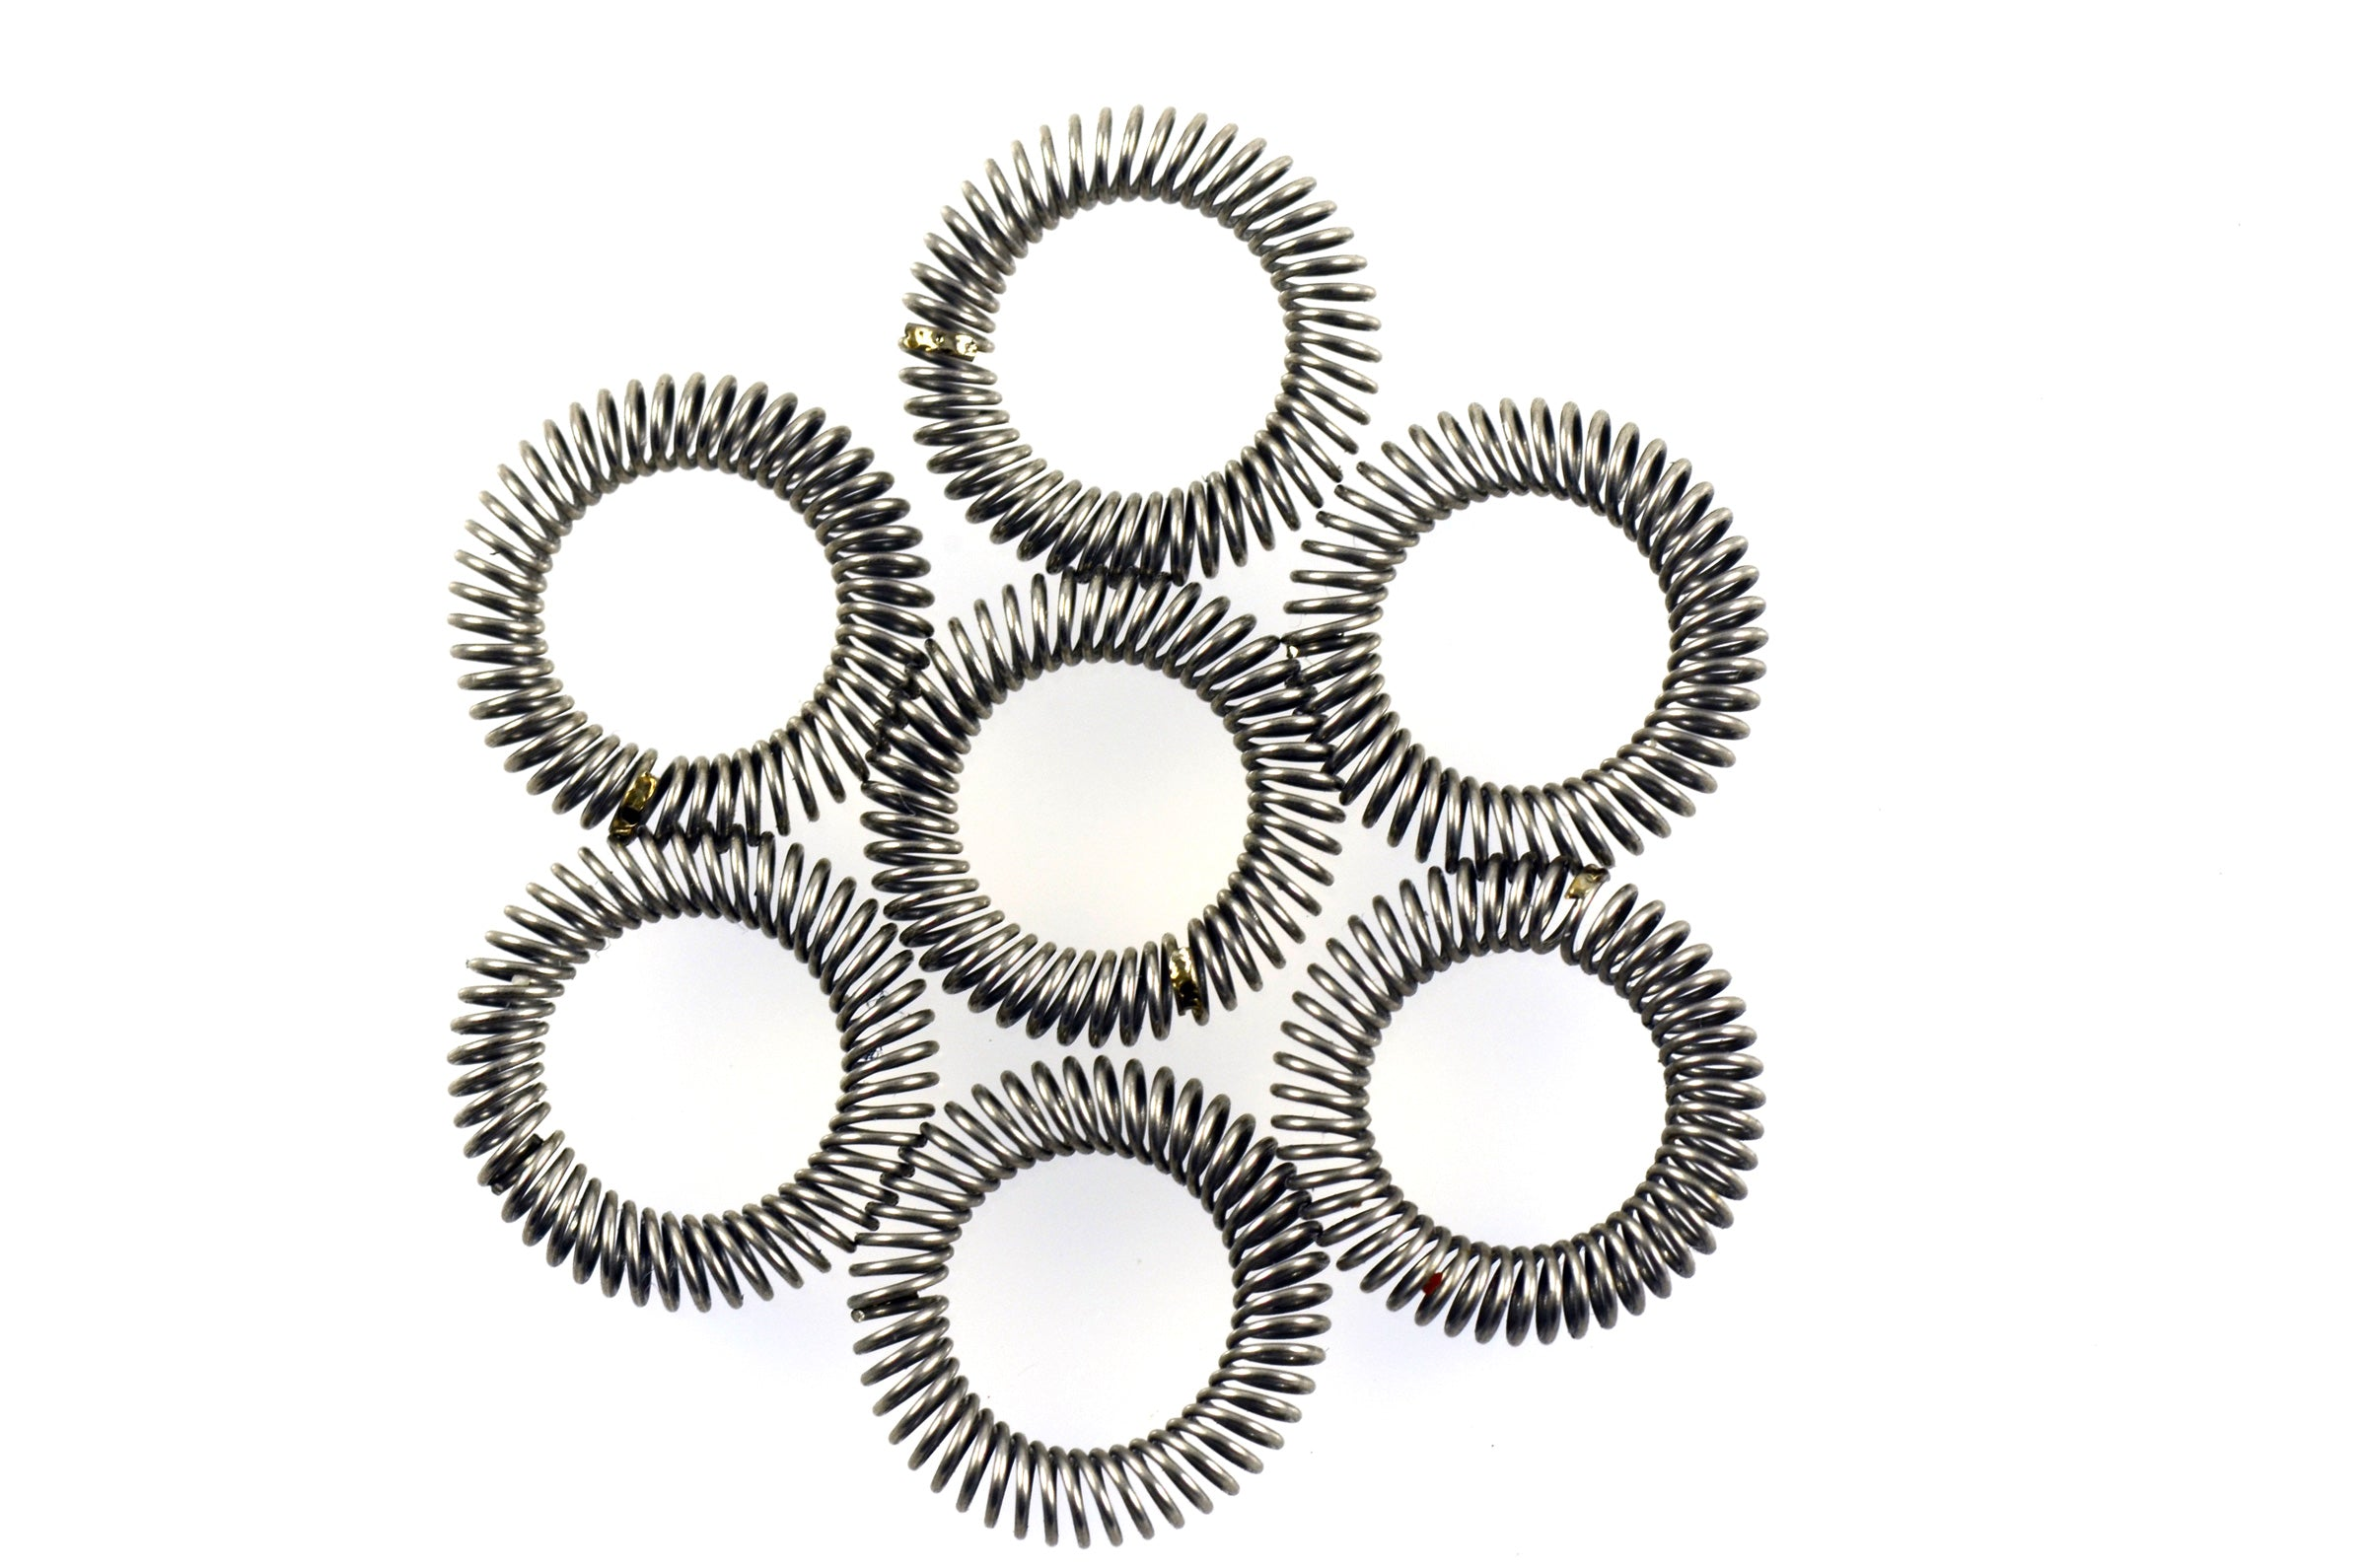 Canted Coil Spring (one item)